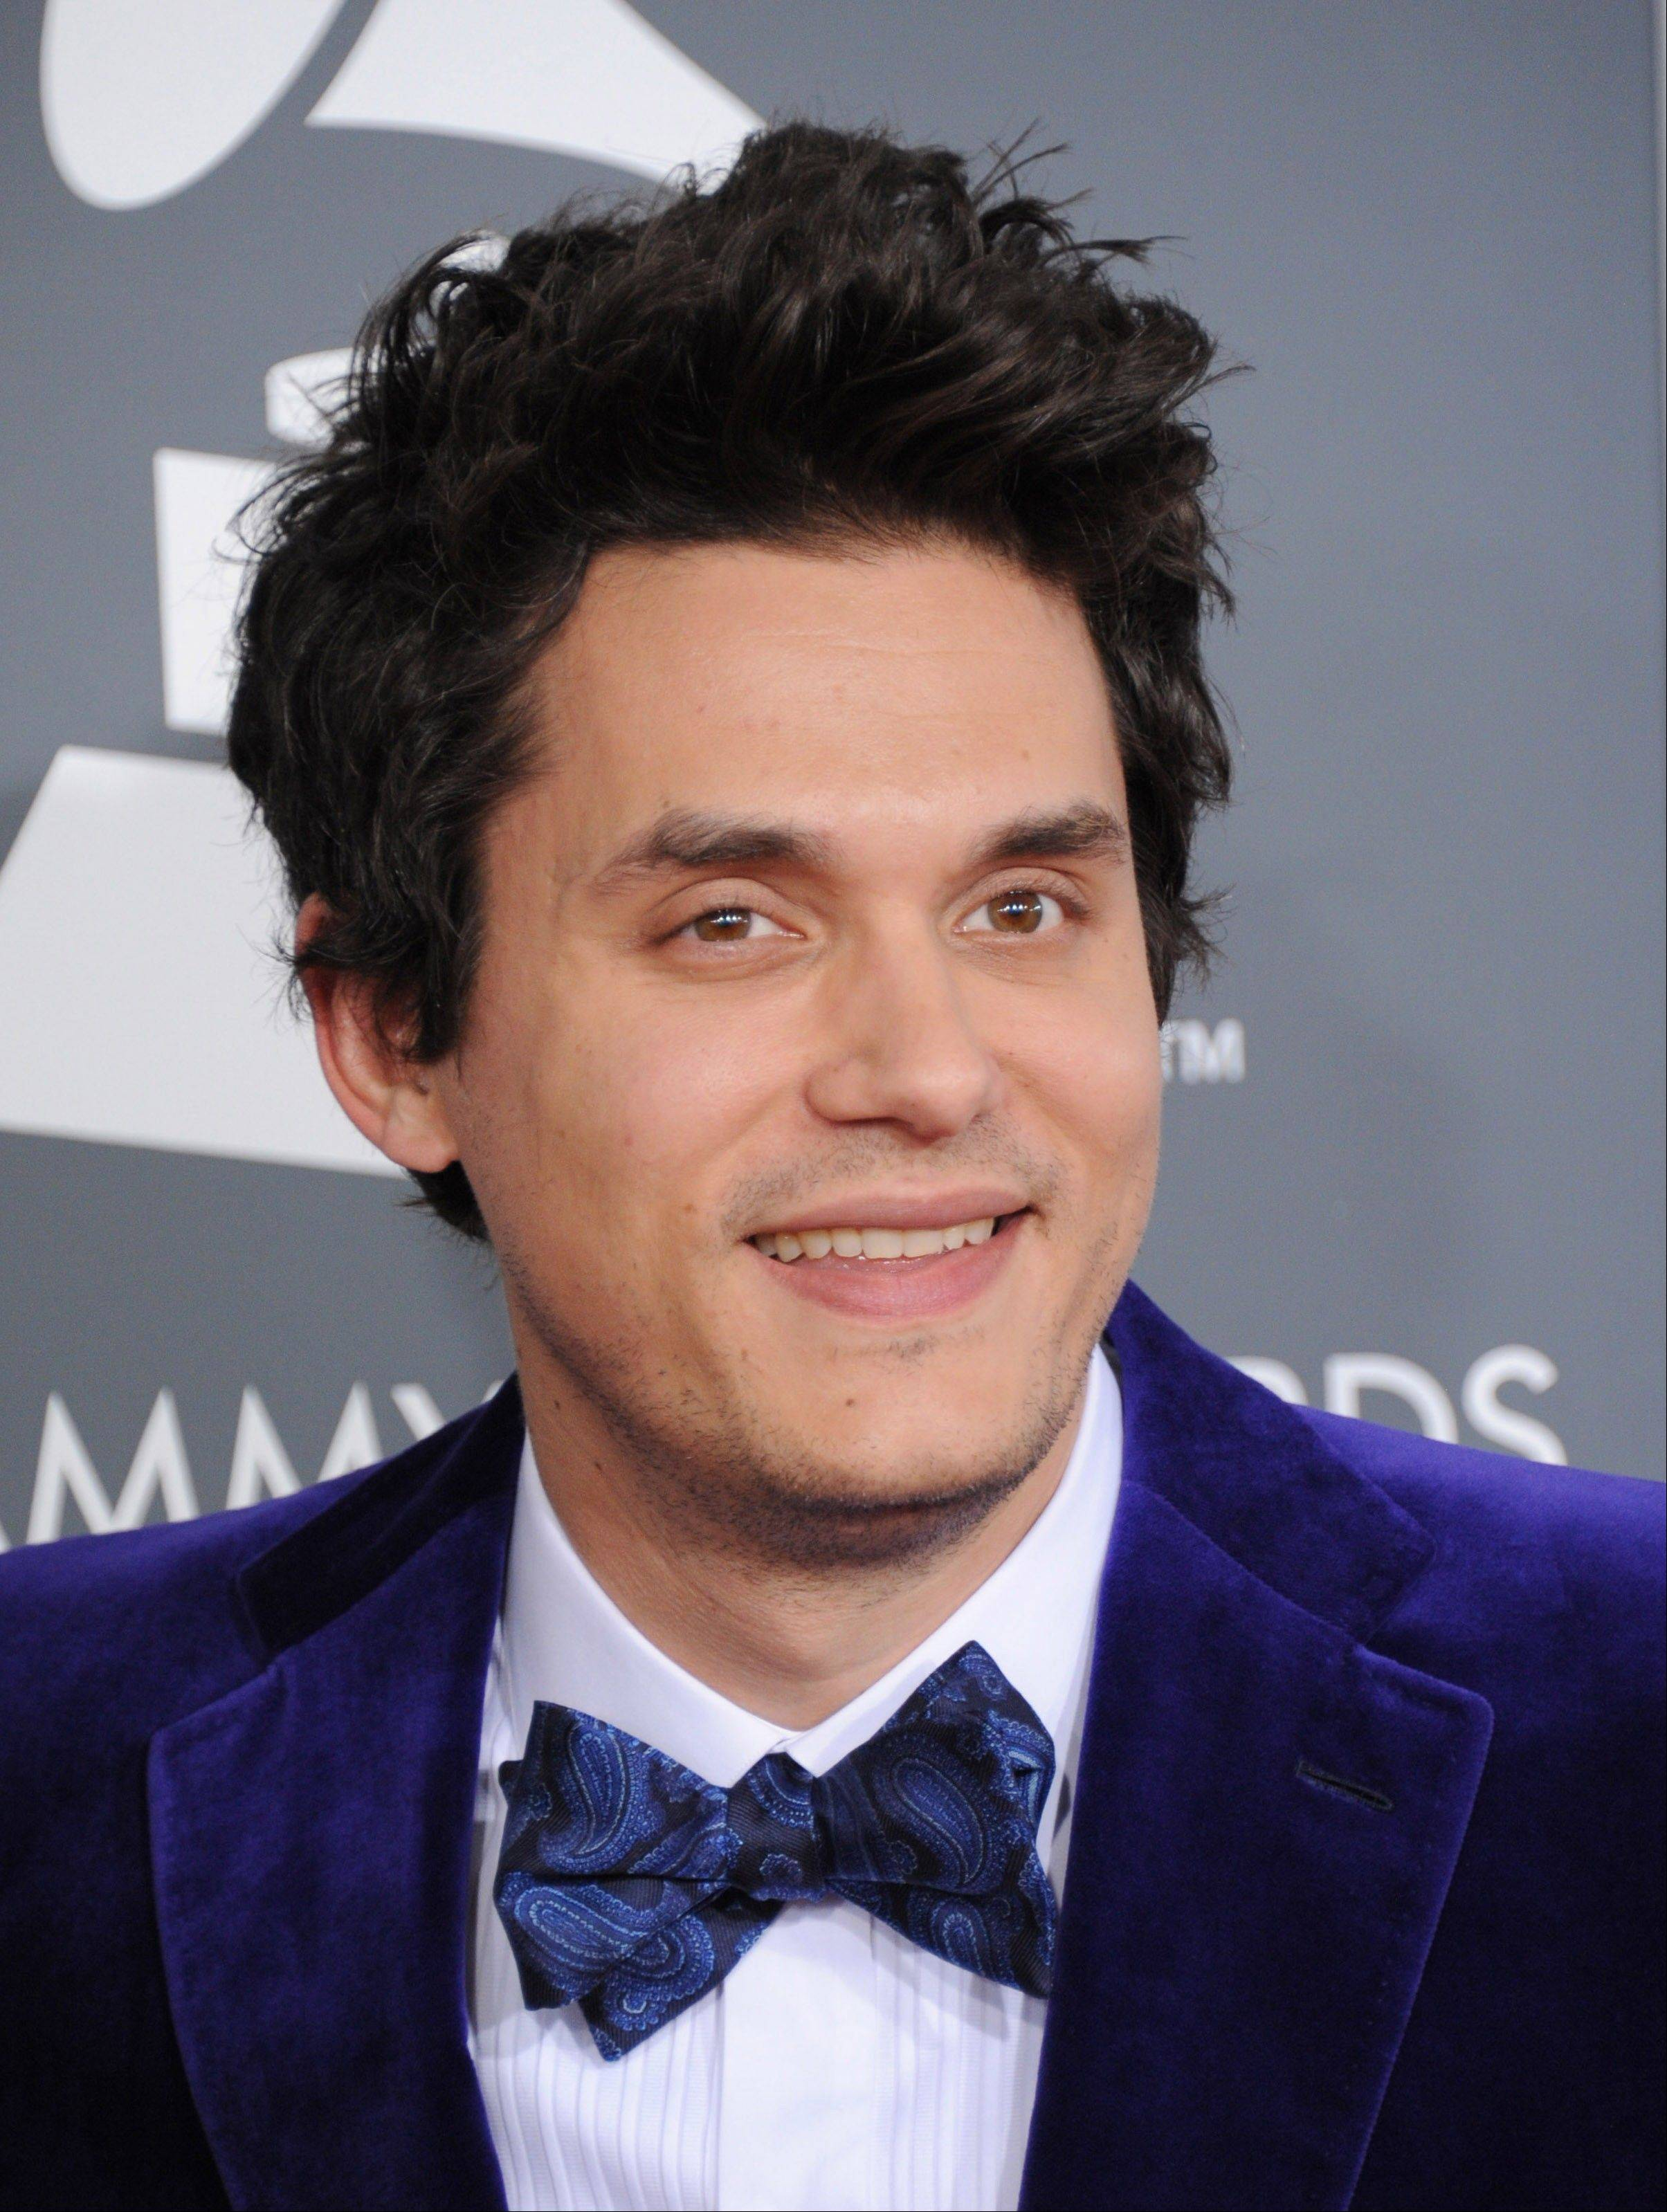 Musician John Mayer arrives at the 55th annual Grammy Awards on Sunday, Feb. 10, 2013, in Los Angeles.